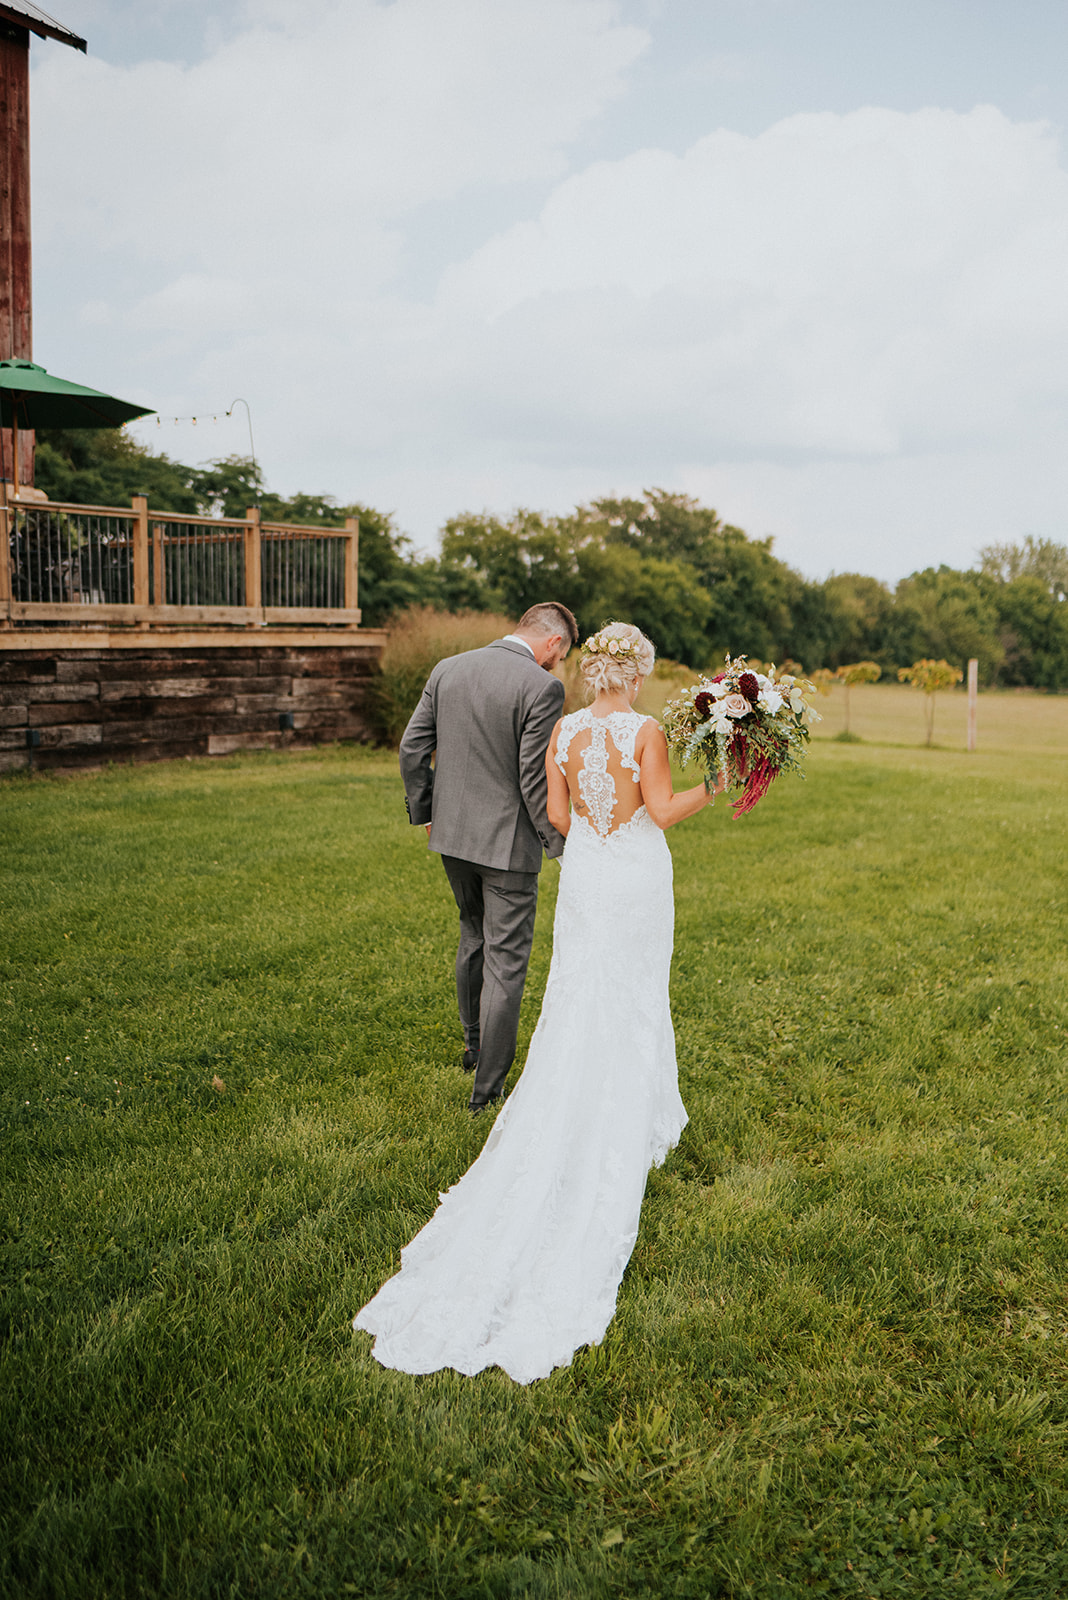 overthevineswisconsinwedding_0700.jpg